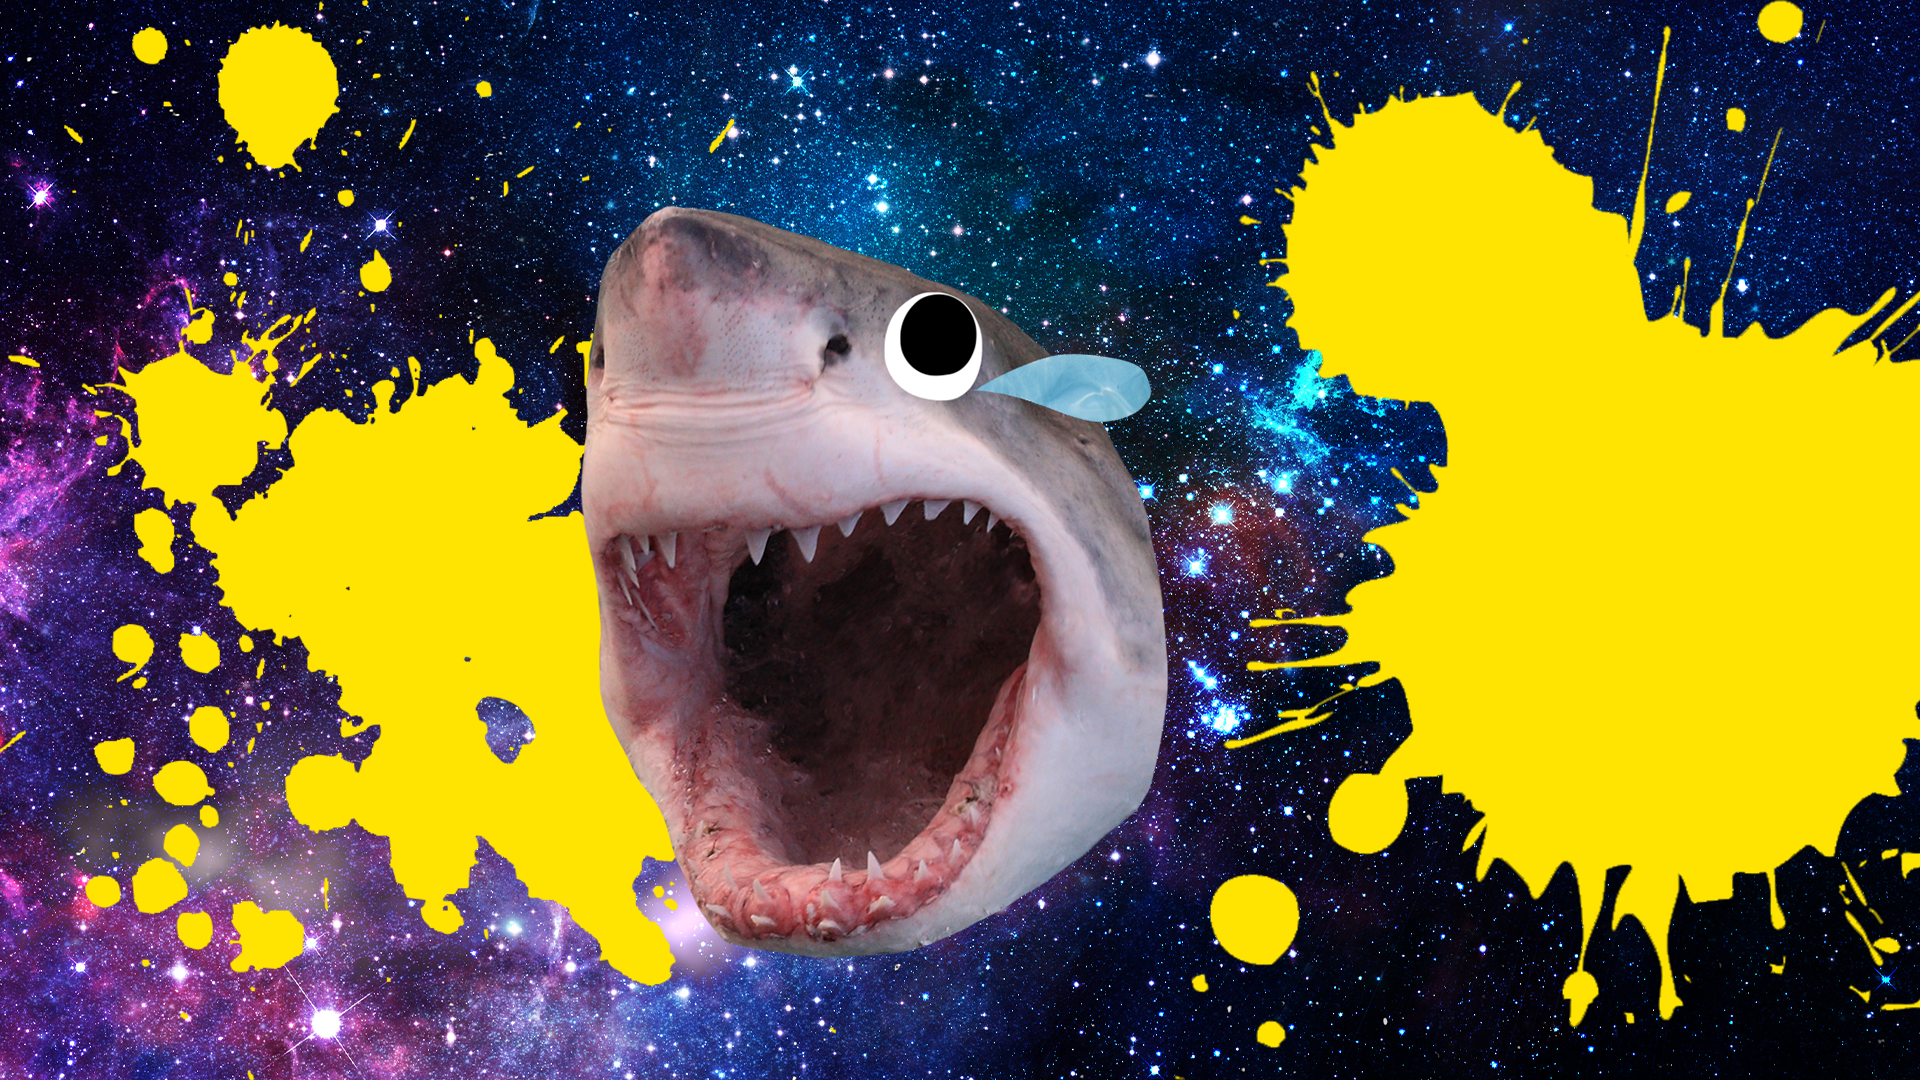 A shark with its mouth wide open in a threatening way